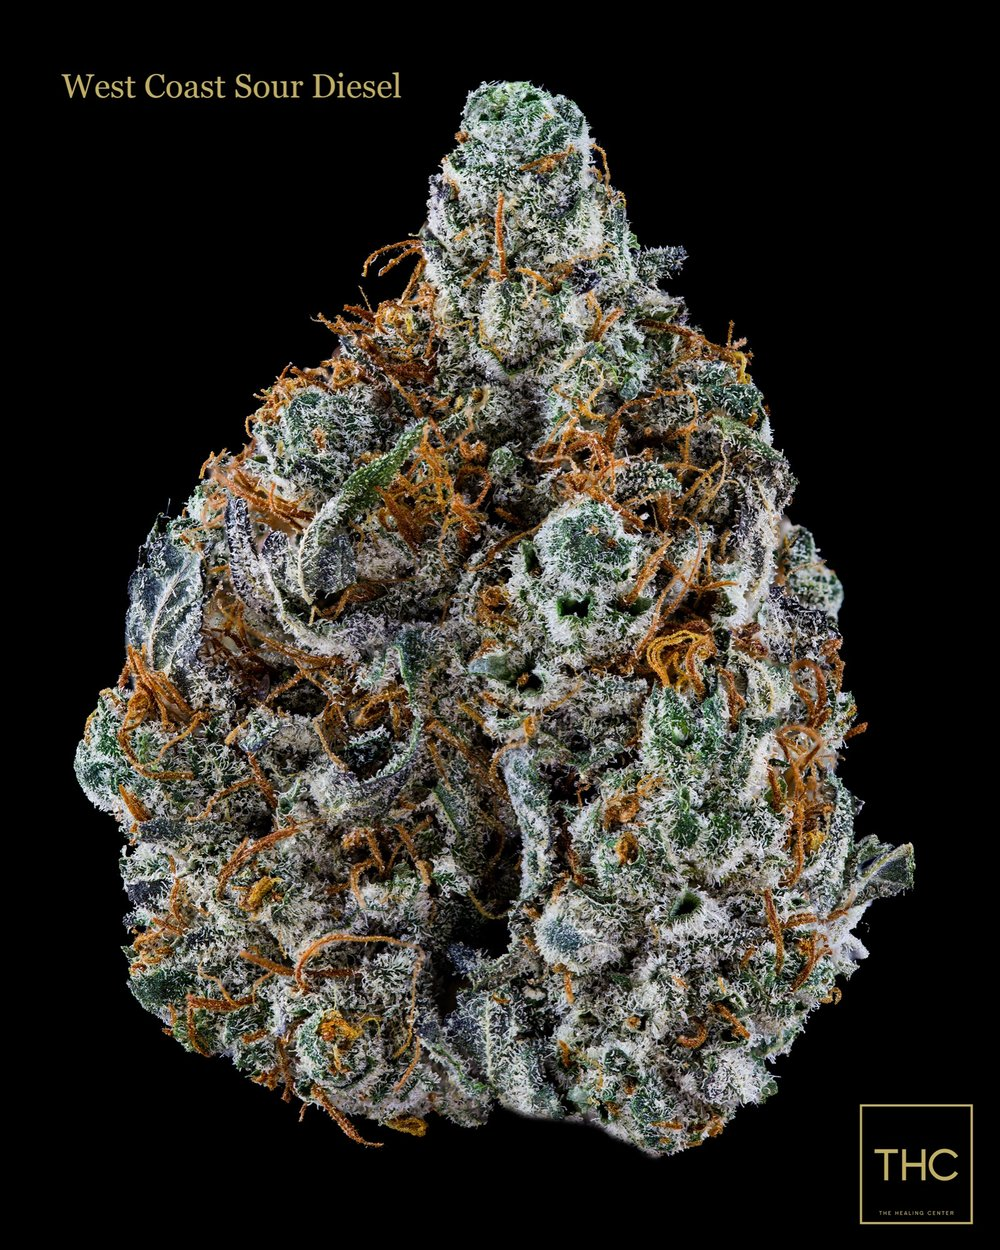 West Coast Sour Diesel THC.jpg